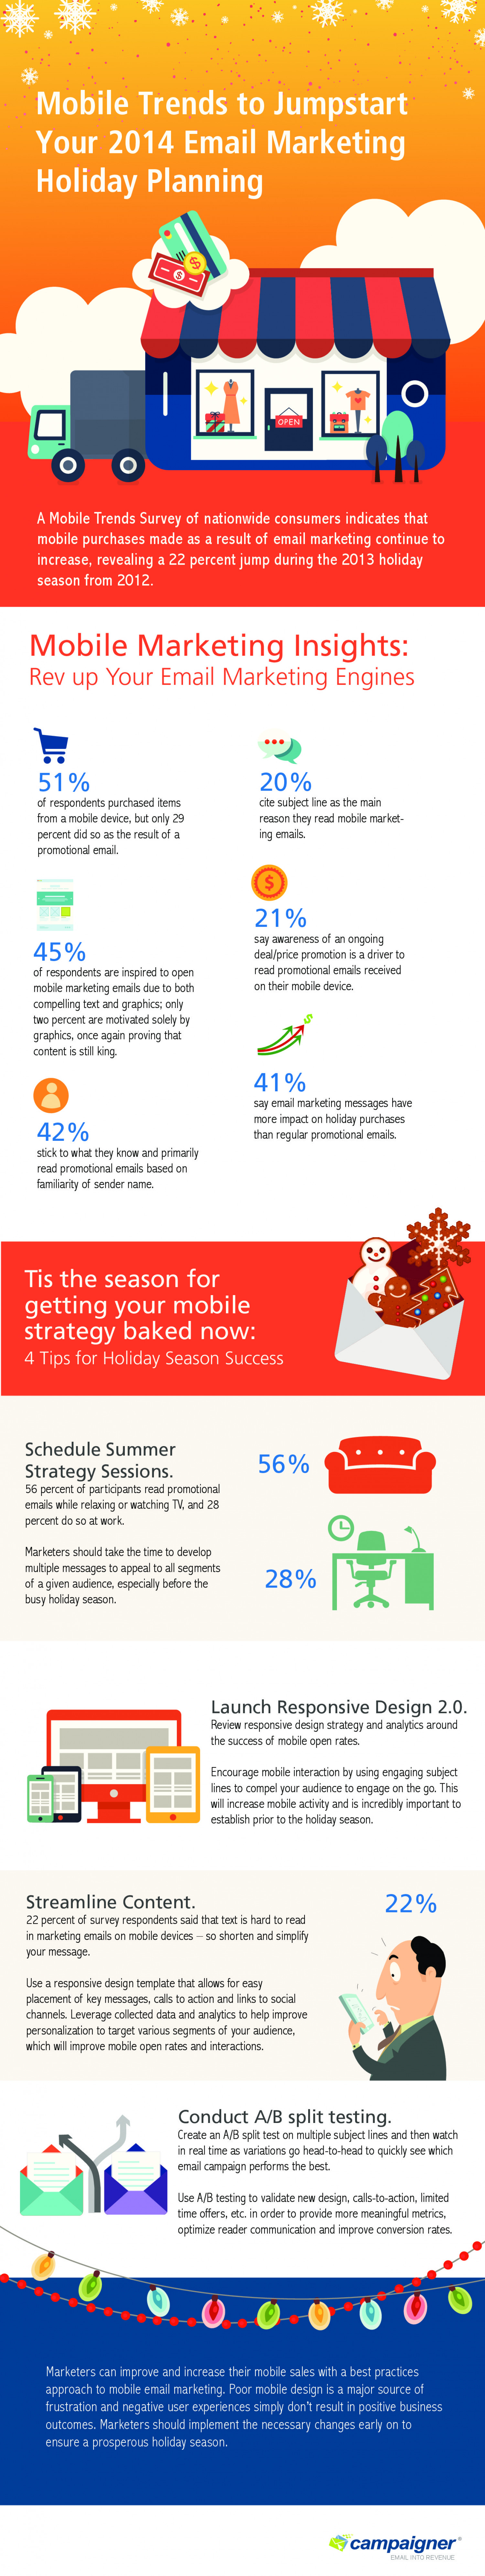 Mobile Trends to Jumpstart 2014 Email Marketing Holiday Planning Infographic